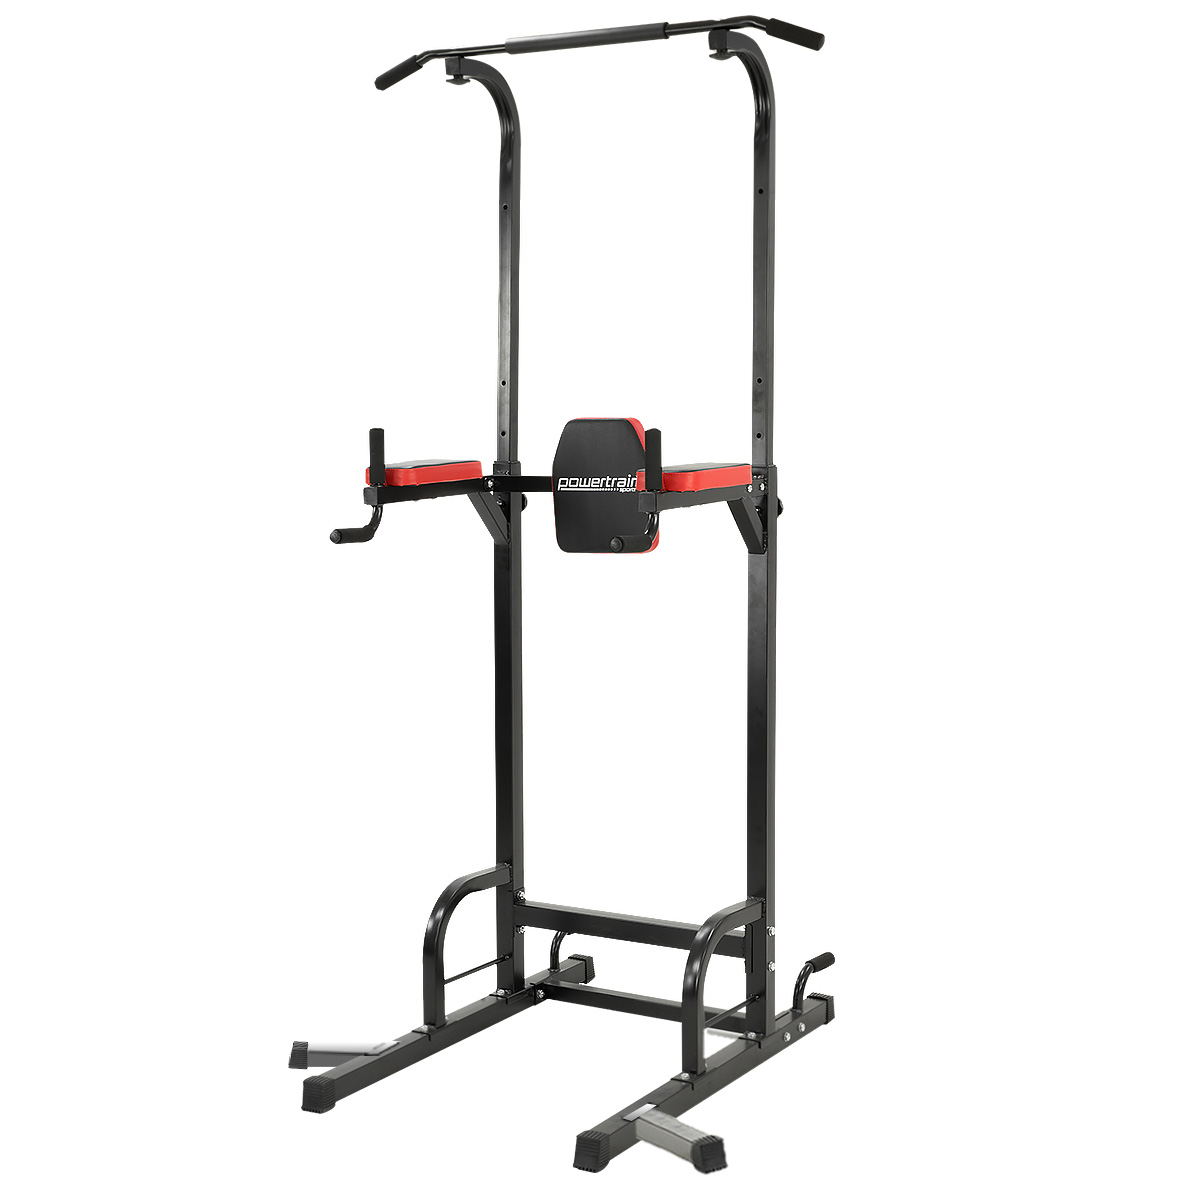 New powertrain power tower chin abs dip pull up multistation home